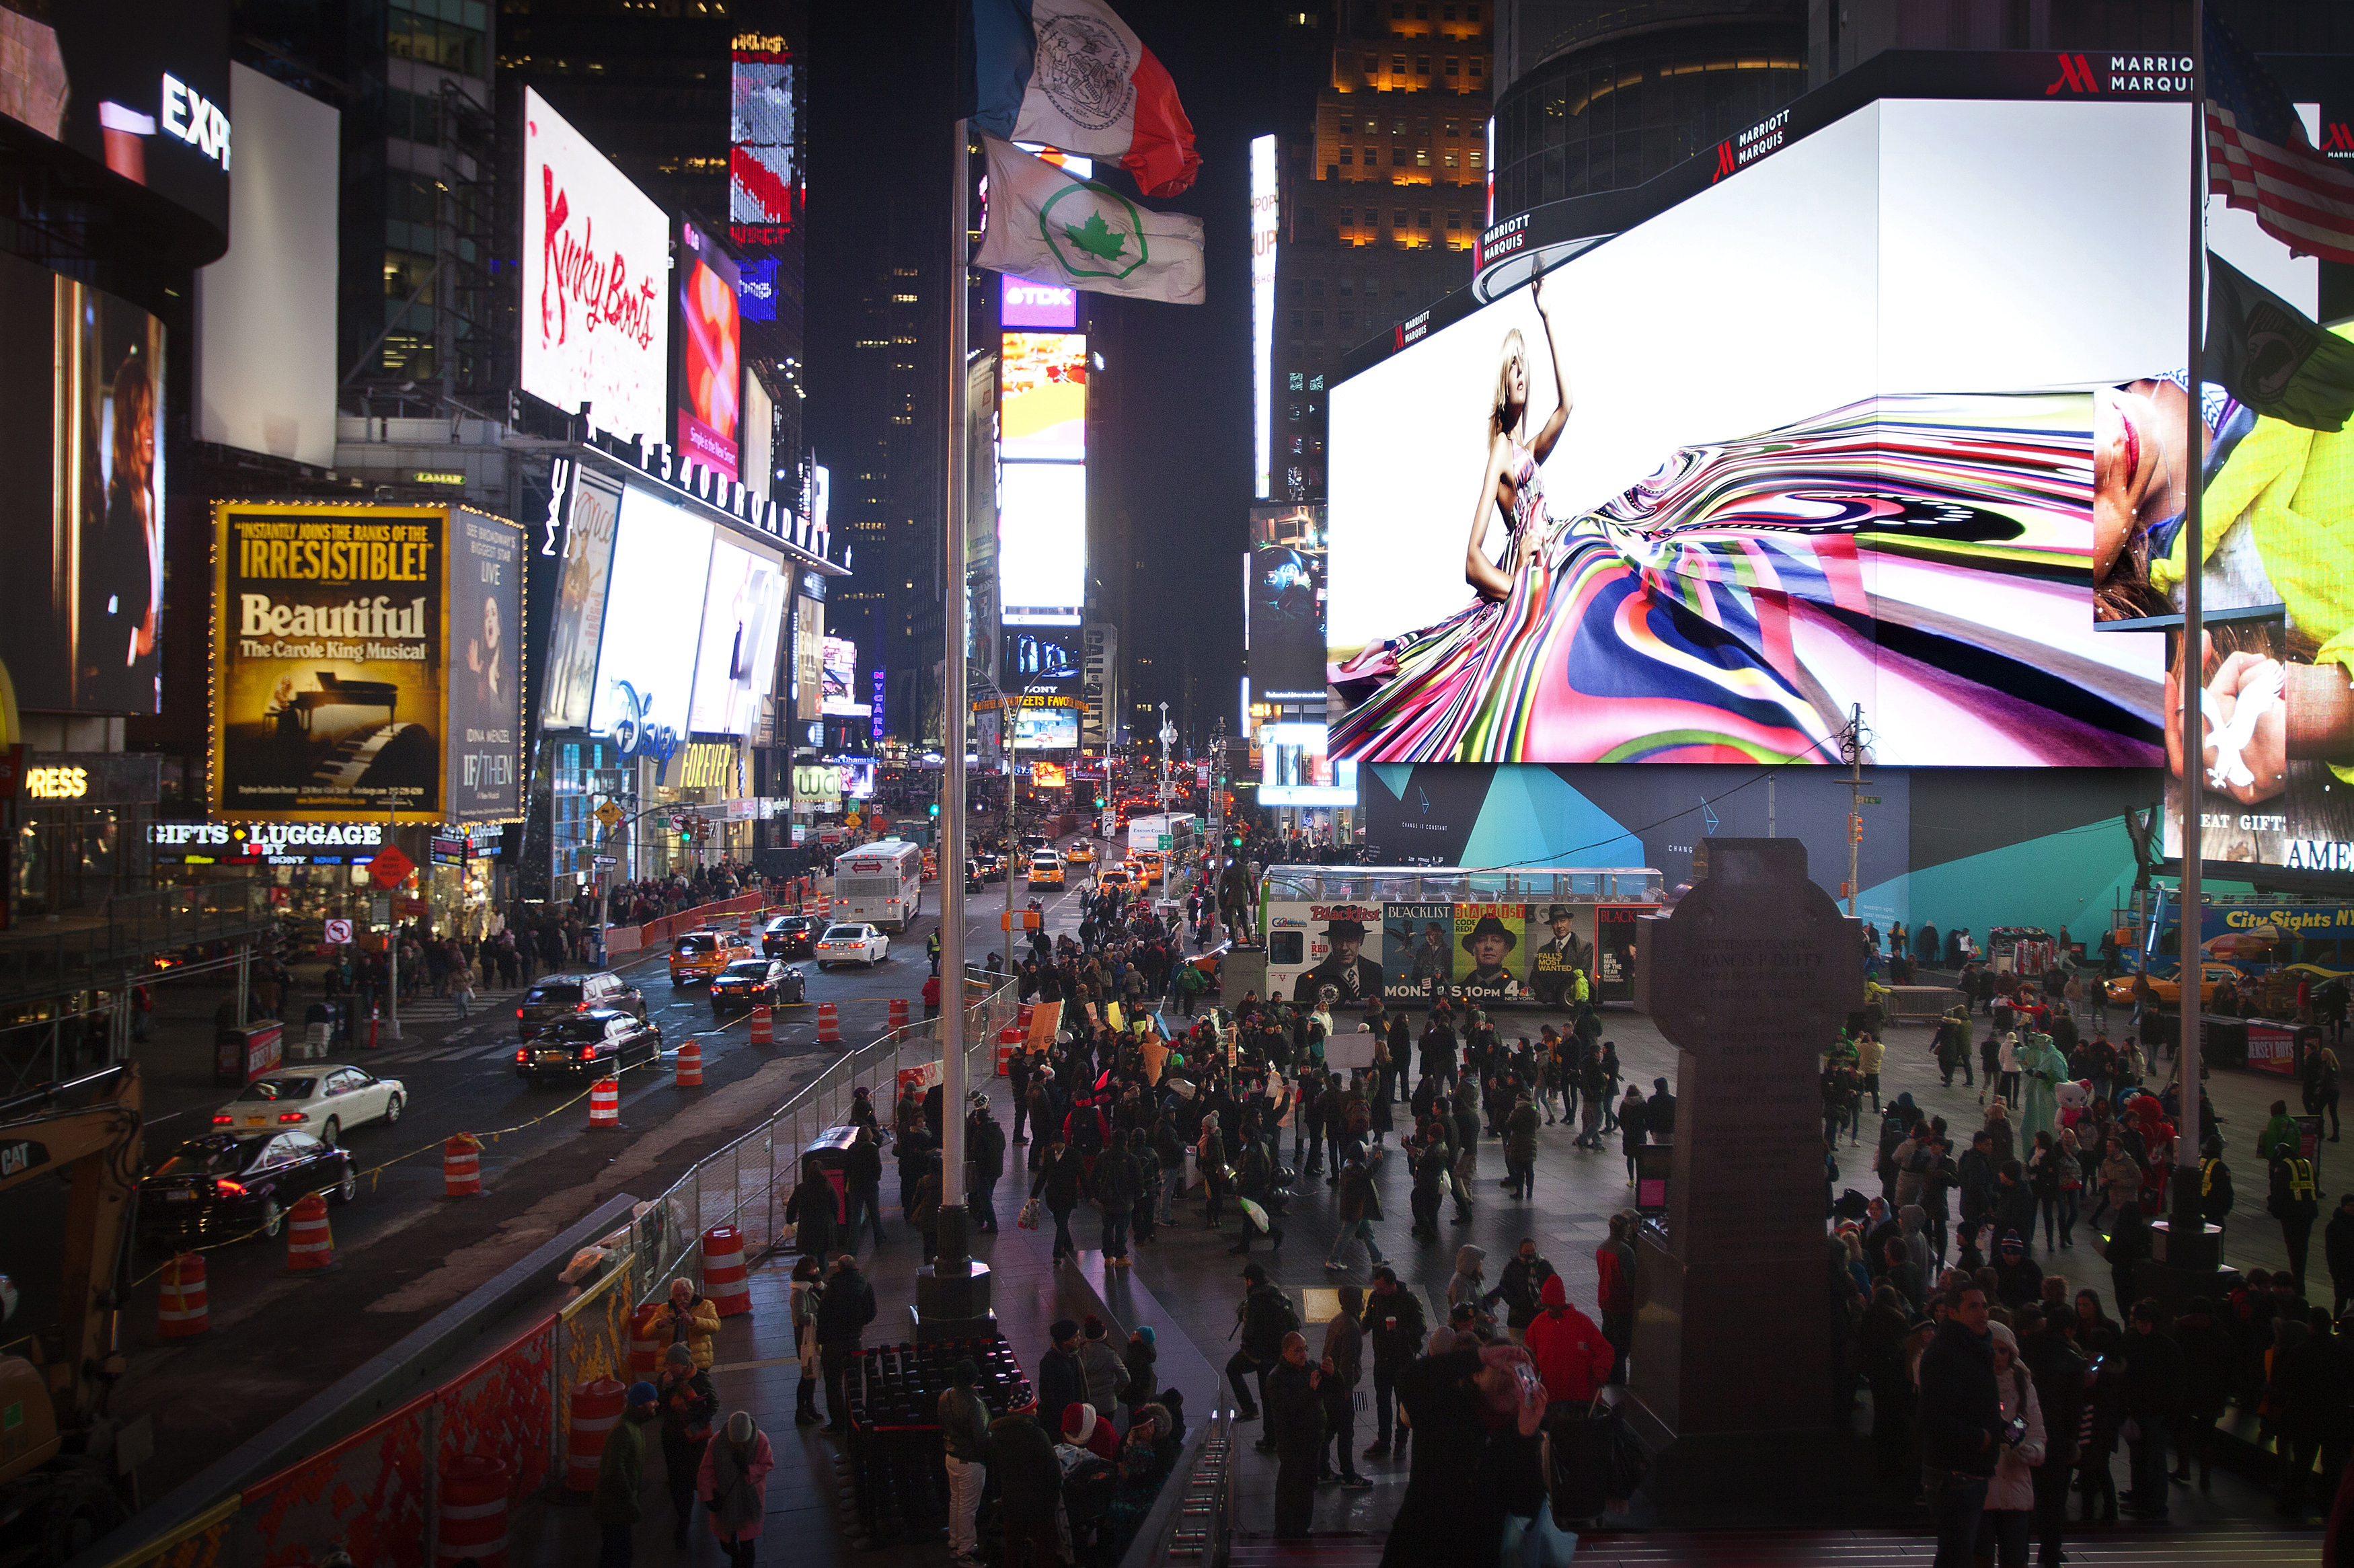 People walk underneath a giant new advertising screen in Times Square, New York, November 20, 2014. The biggest advertising billboard in Times Square history, longer that a football field and eight stories high, which is the world's largest high-definition video display with nearly 24 million LED pixels, lit up for the first time on Tuesday. The rate for a four-week advertising blitz is $2.5 million, according to the New York Times.